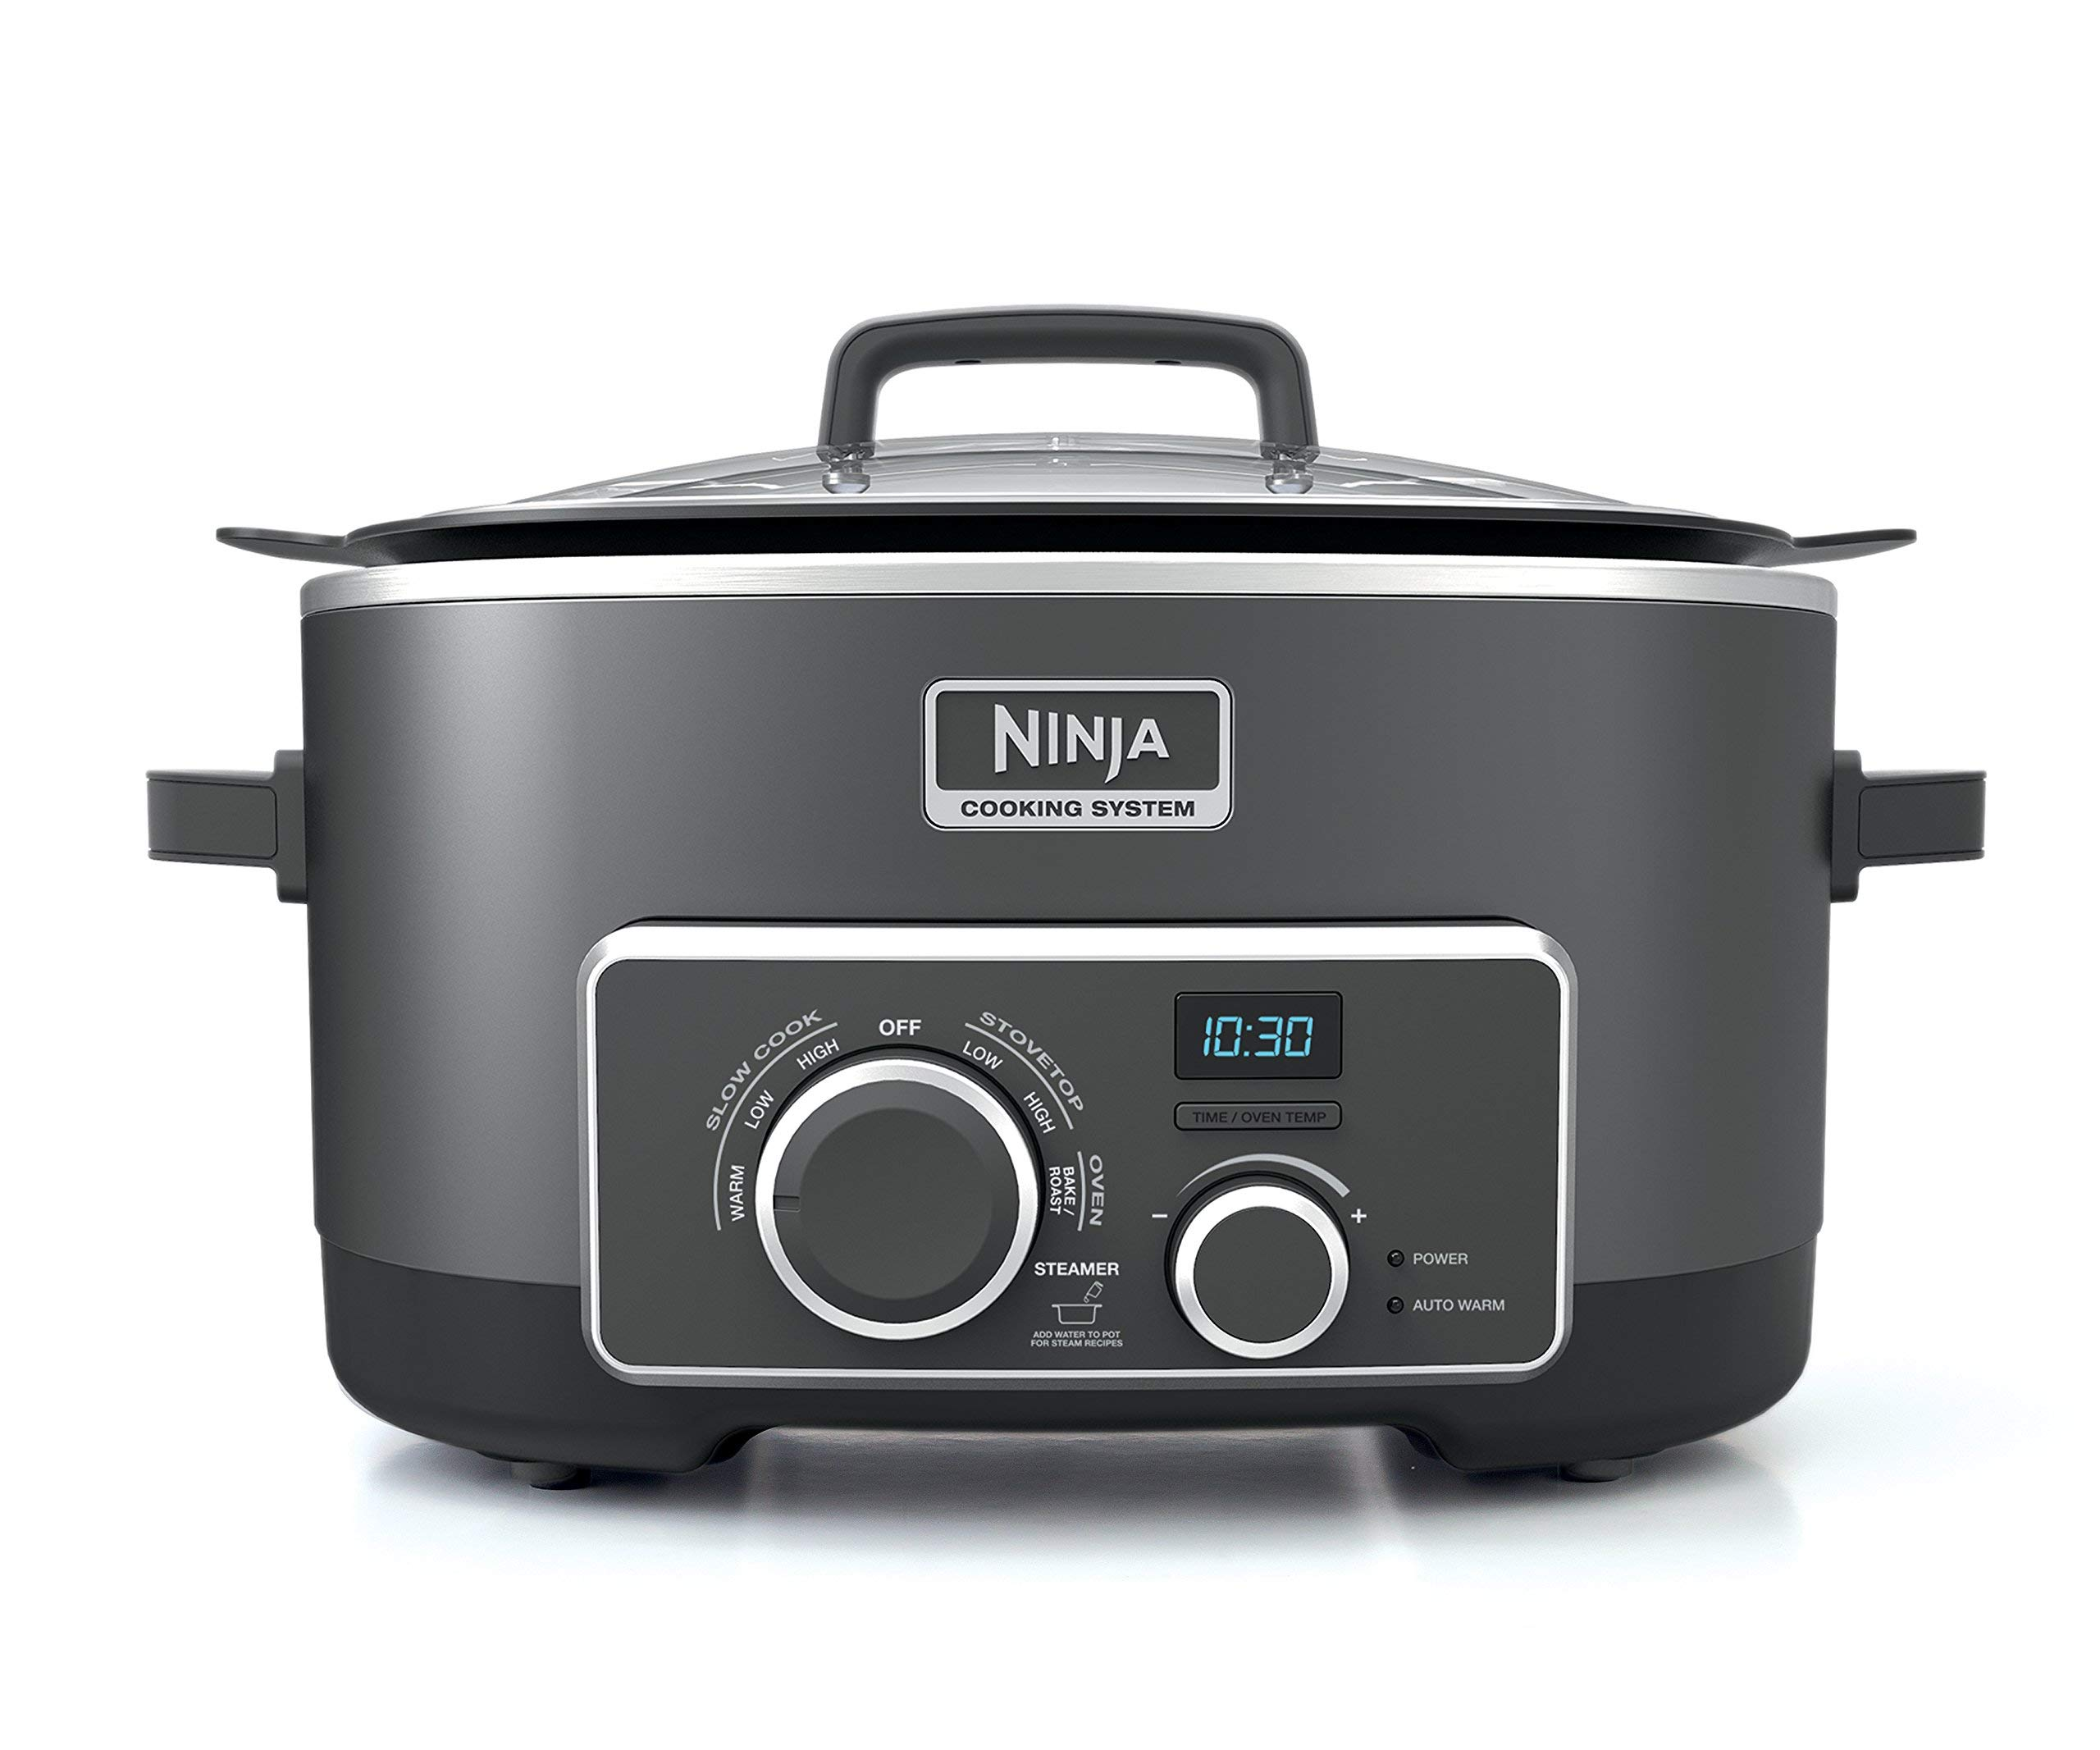 Ninja Multi-Cooker with 4-in-1 Stove Top, Oven, Steam and Slow Cooker Options, 6-Quart Nonstick Pot, and Steaming/Roasting Rack (MC950Z), Black (Renewed)